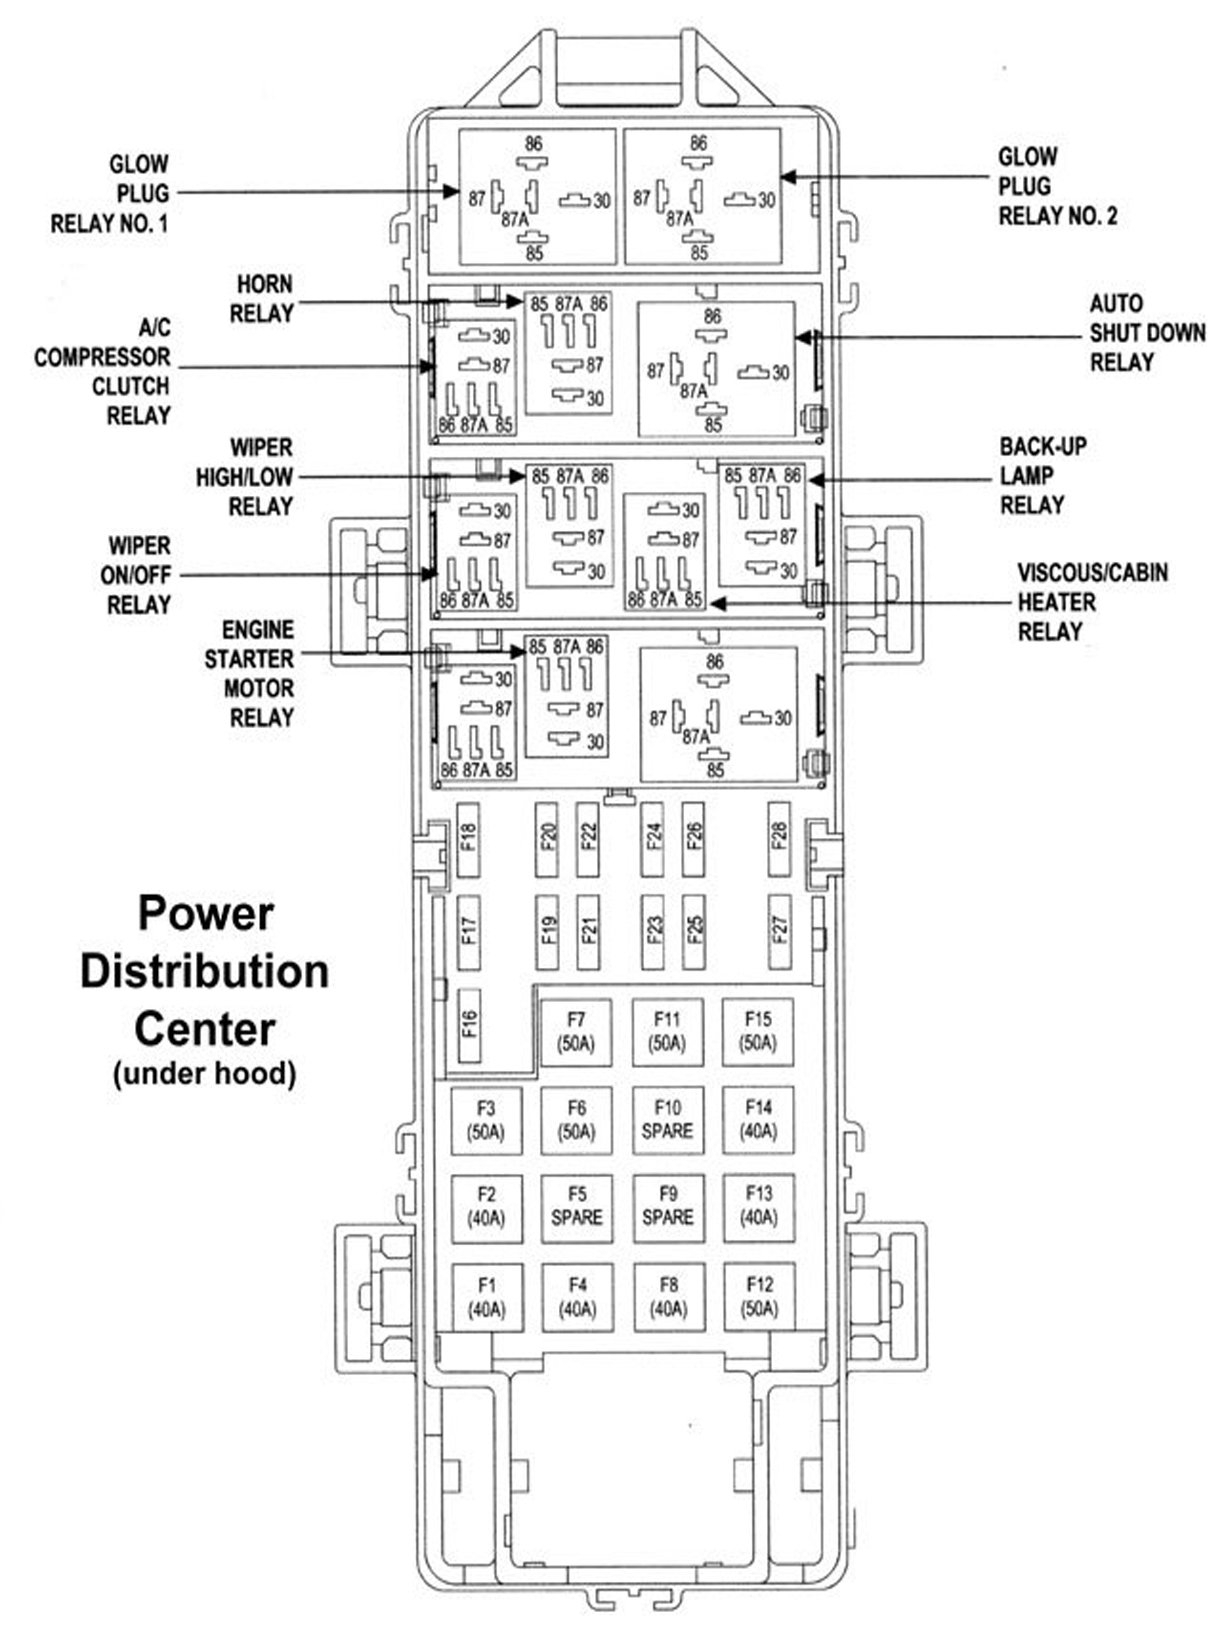 Wiring Diagram For 1999 Jeep Grand Cherokee